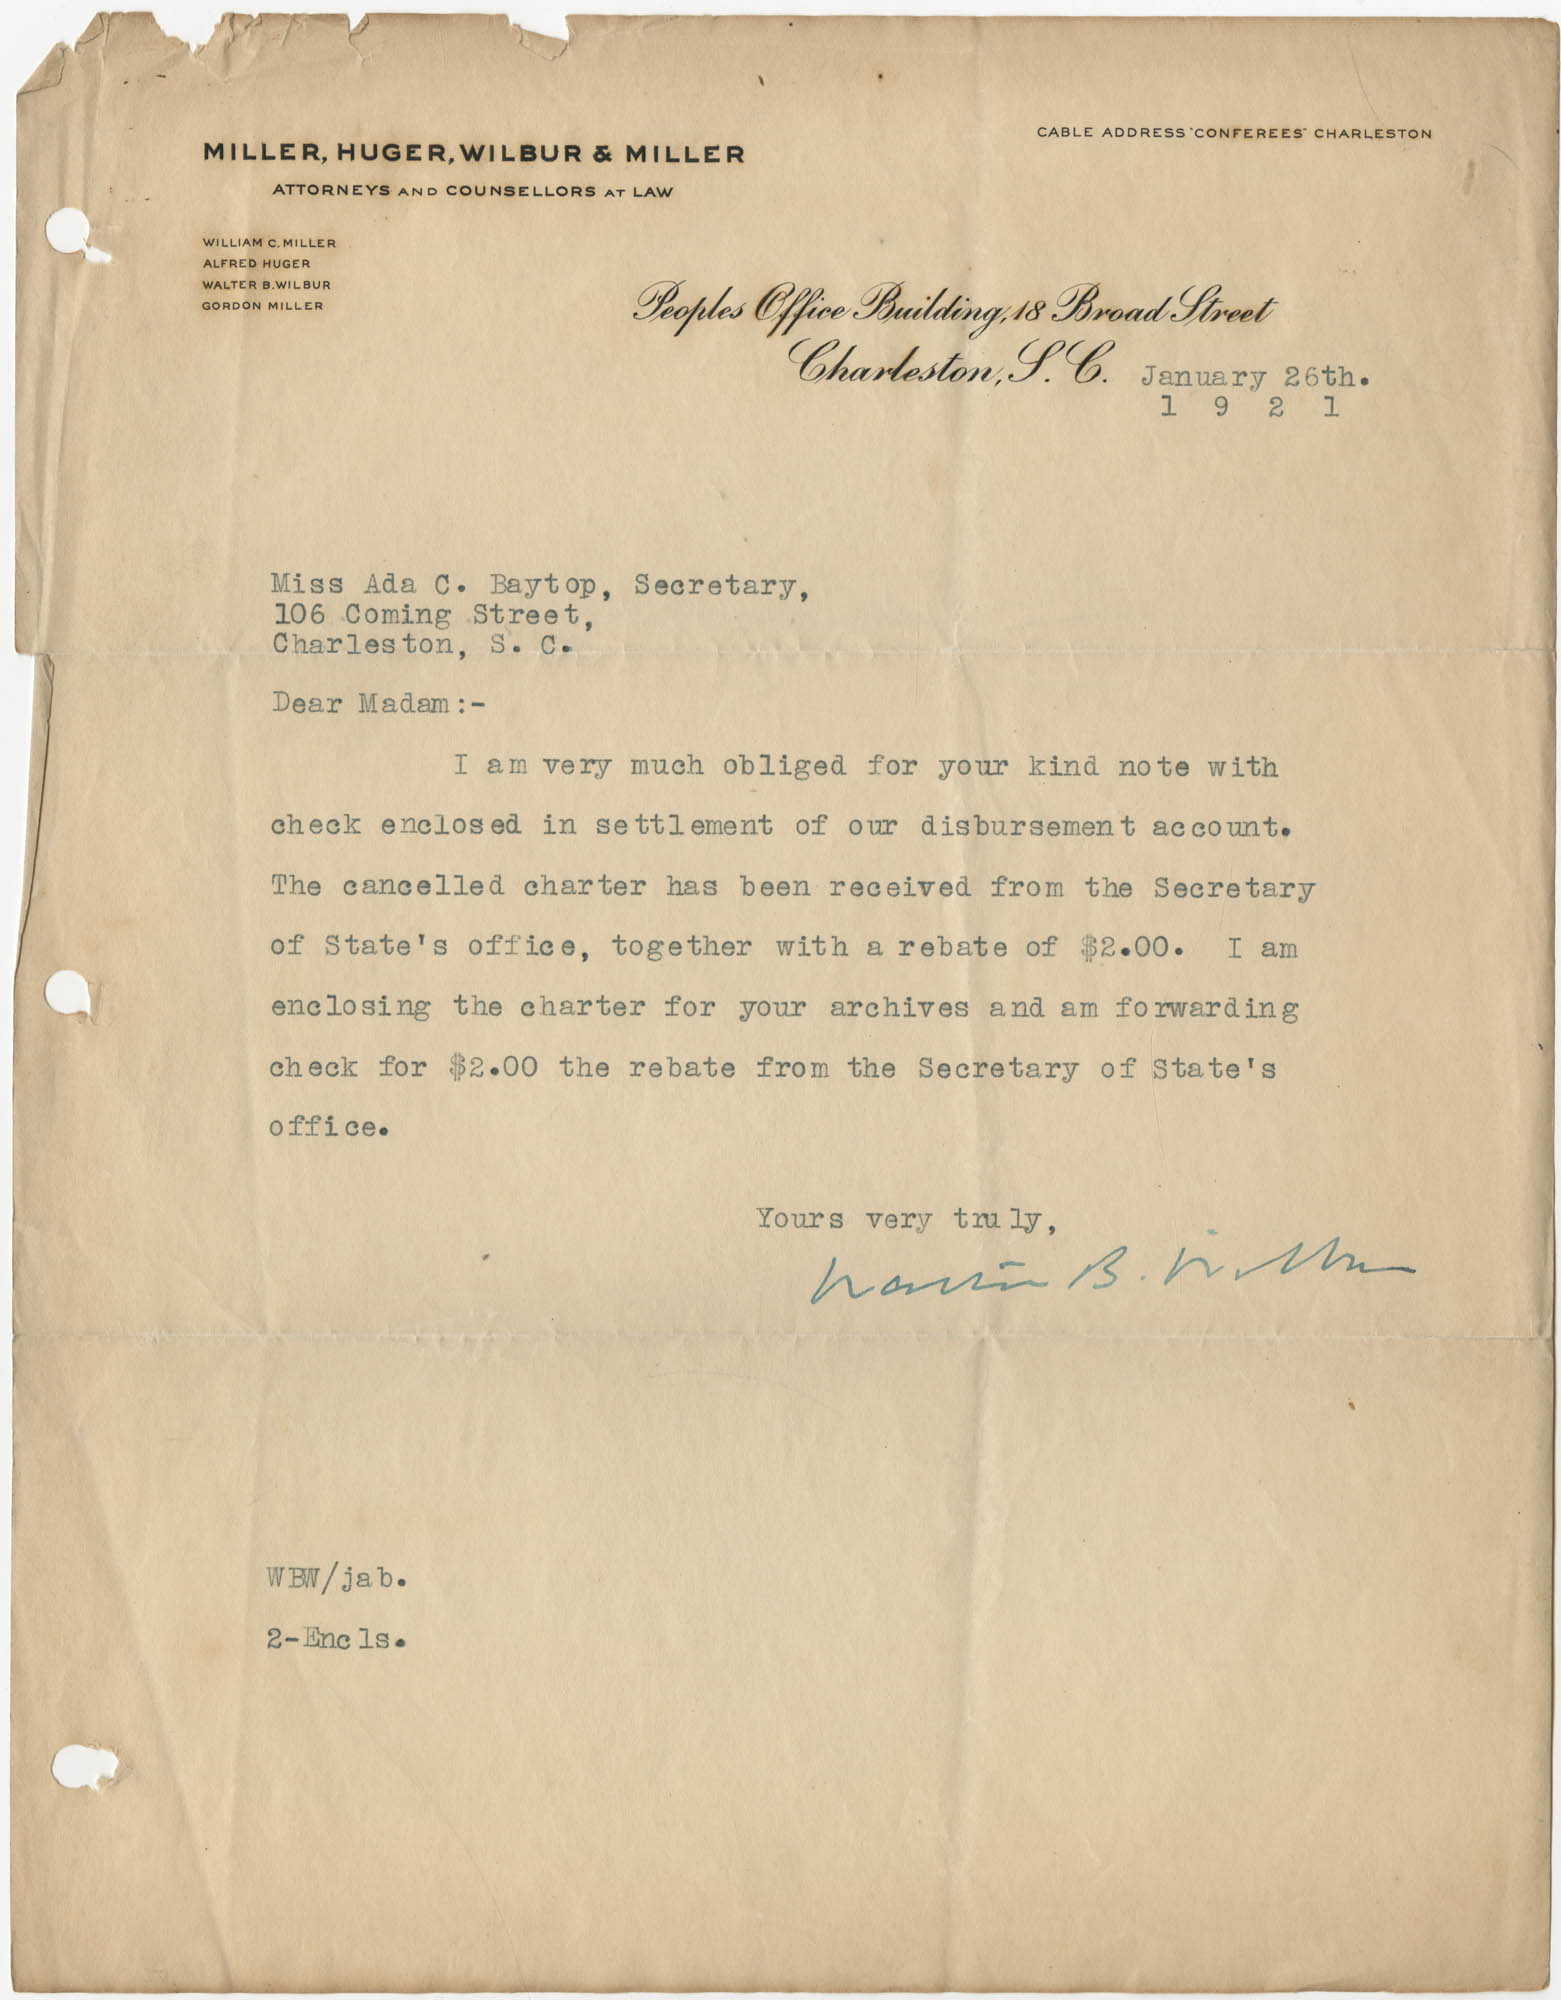 Letter from Walter B. Wilbur to Ada C. Baytop, January 26, 1921